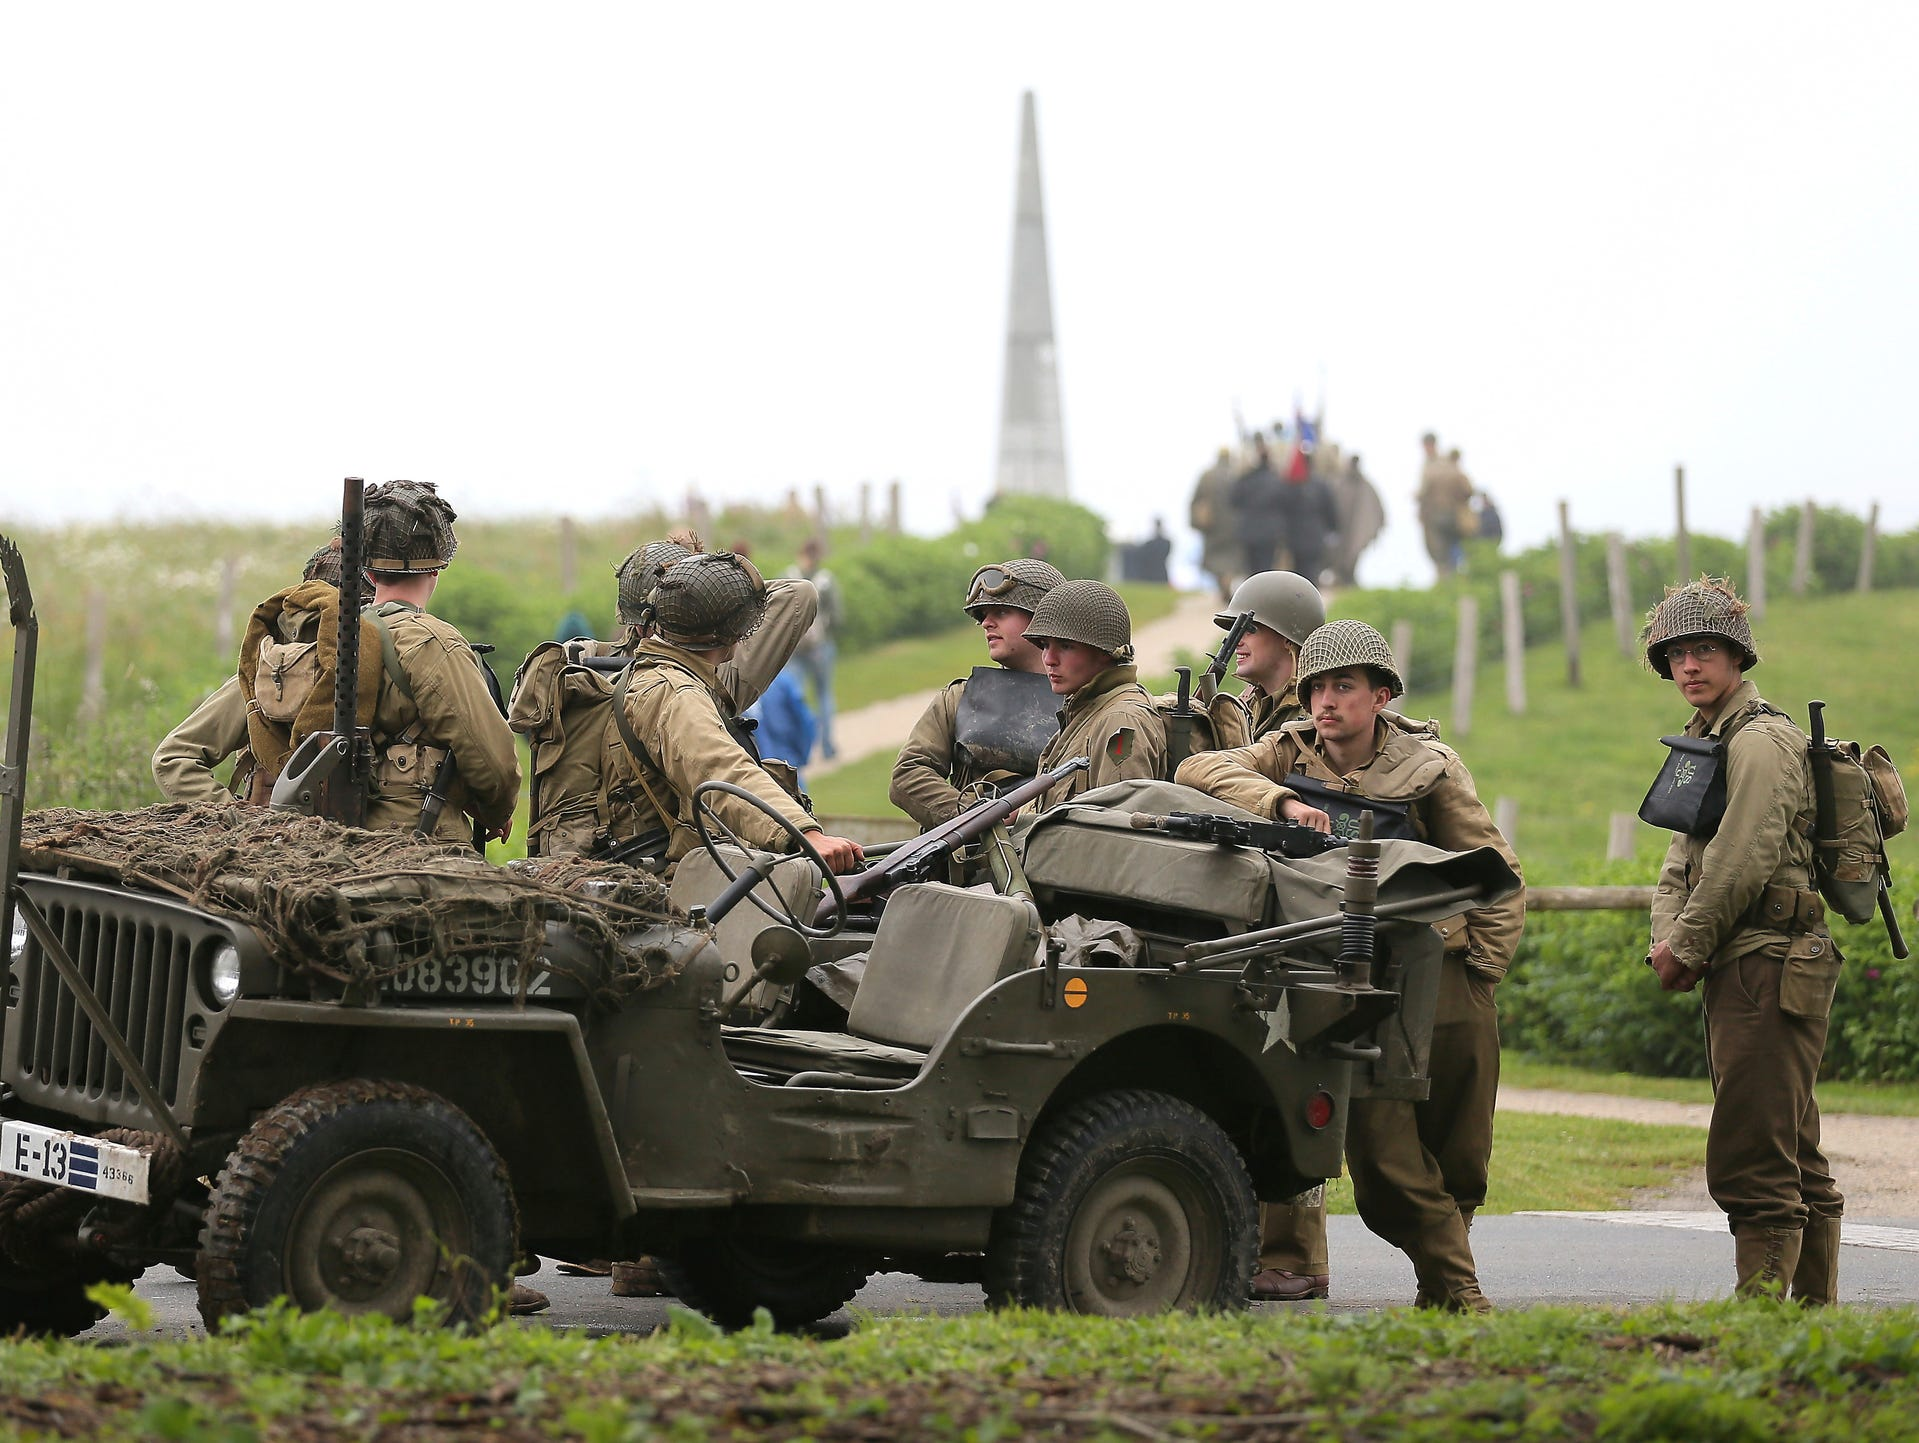 WWII enthusiasts from France wearing 101st Airborne